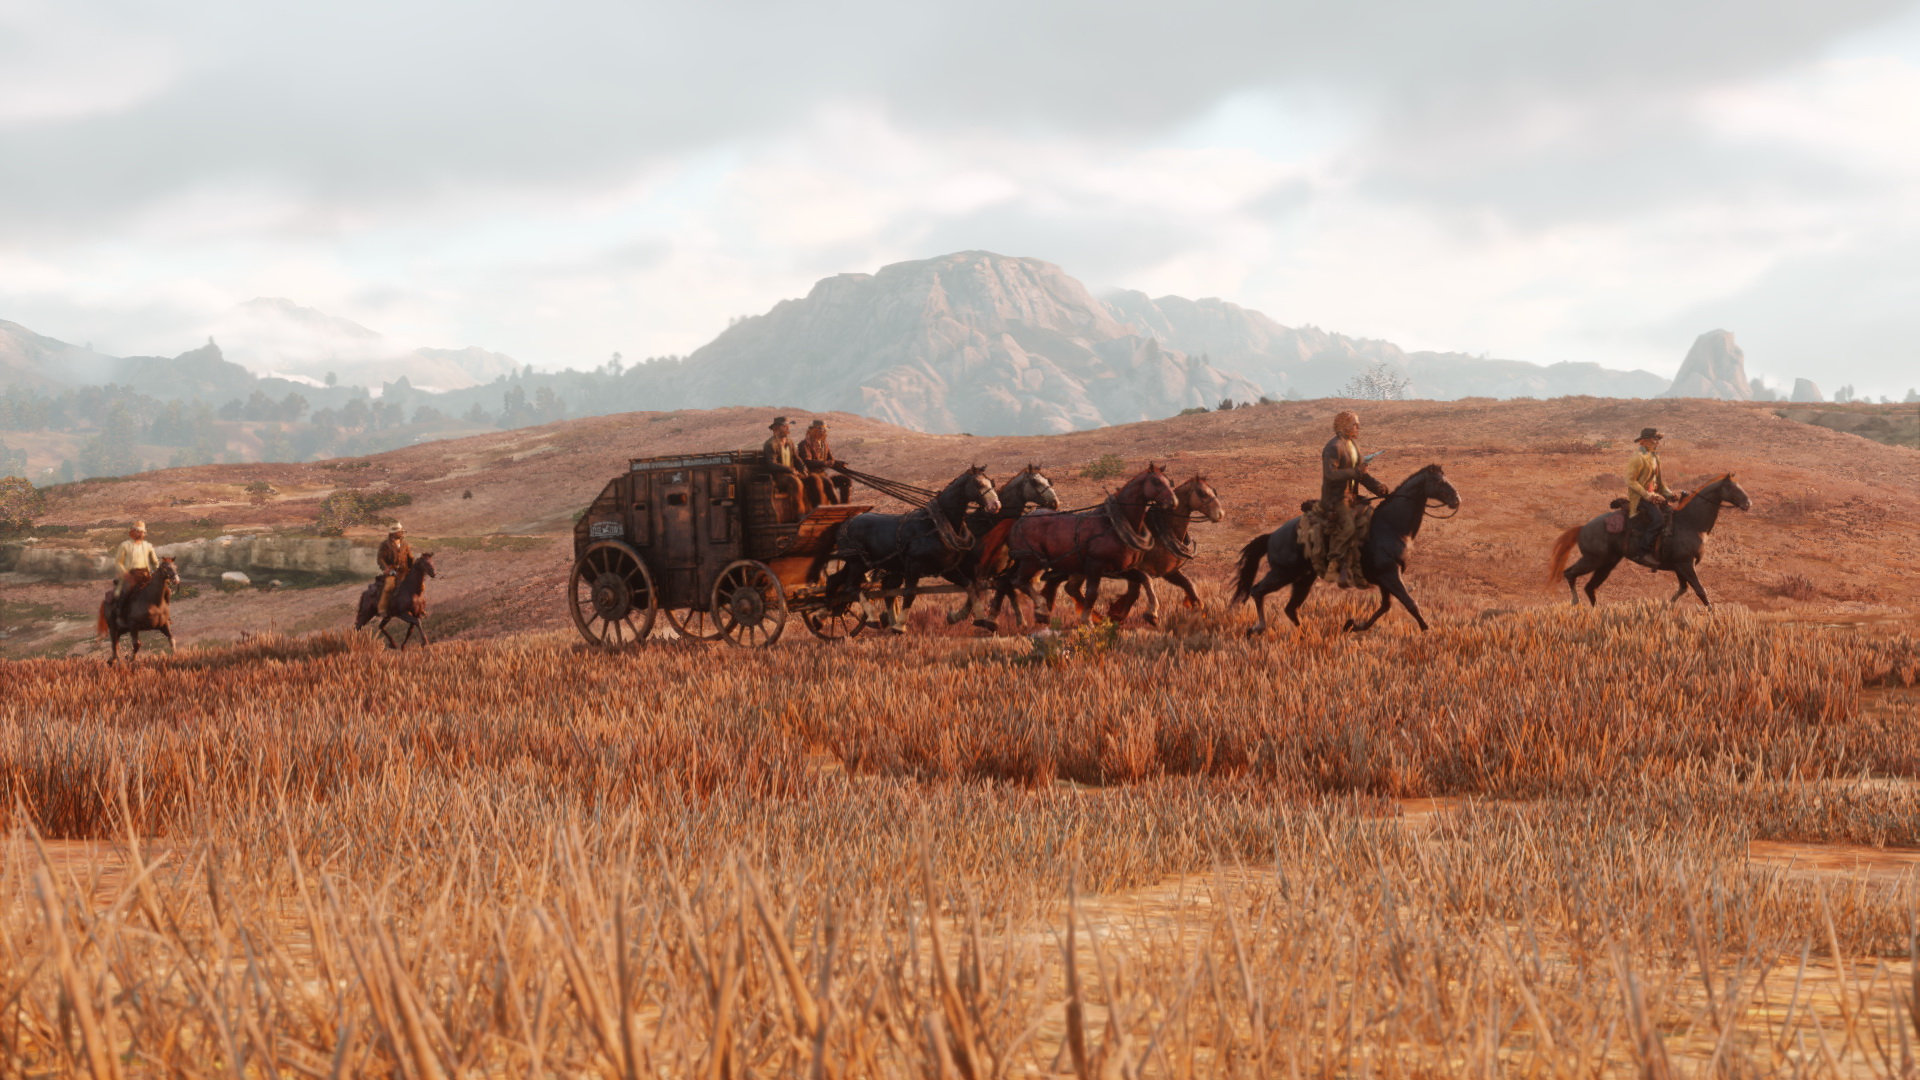 Red Dead Redemption 2 : quelques images inédites + report au printemps 2018